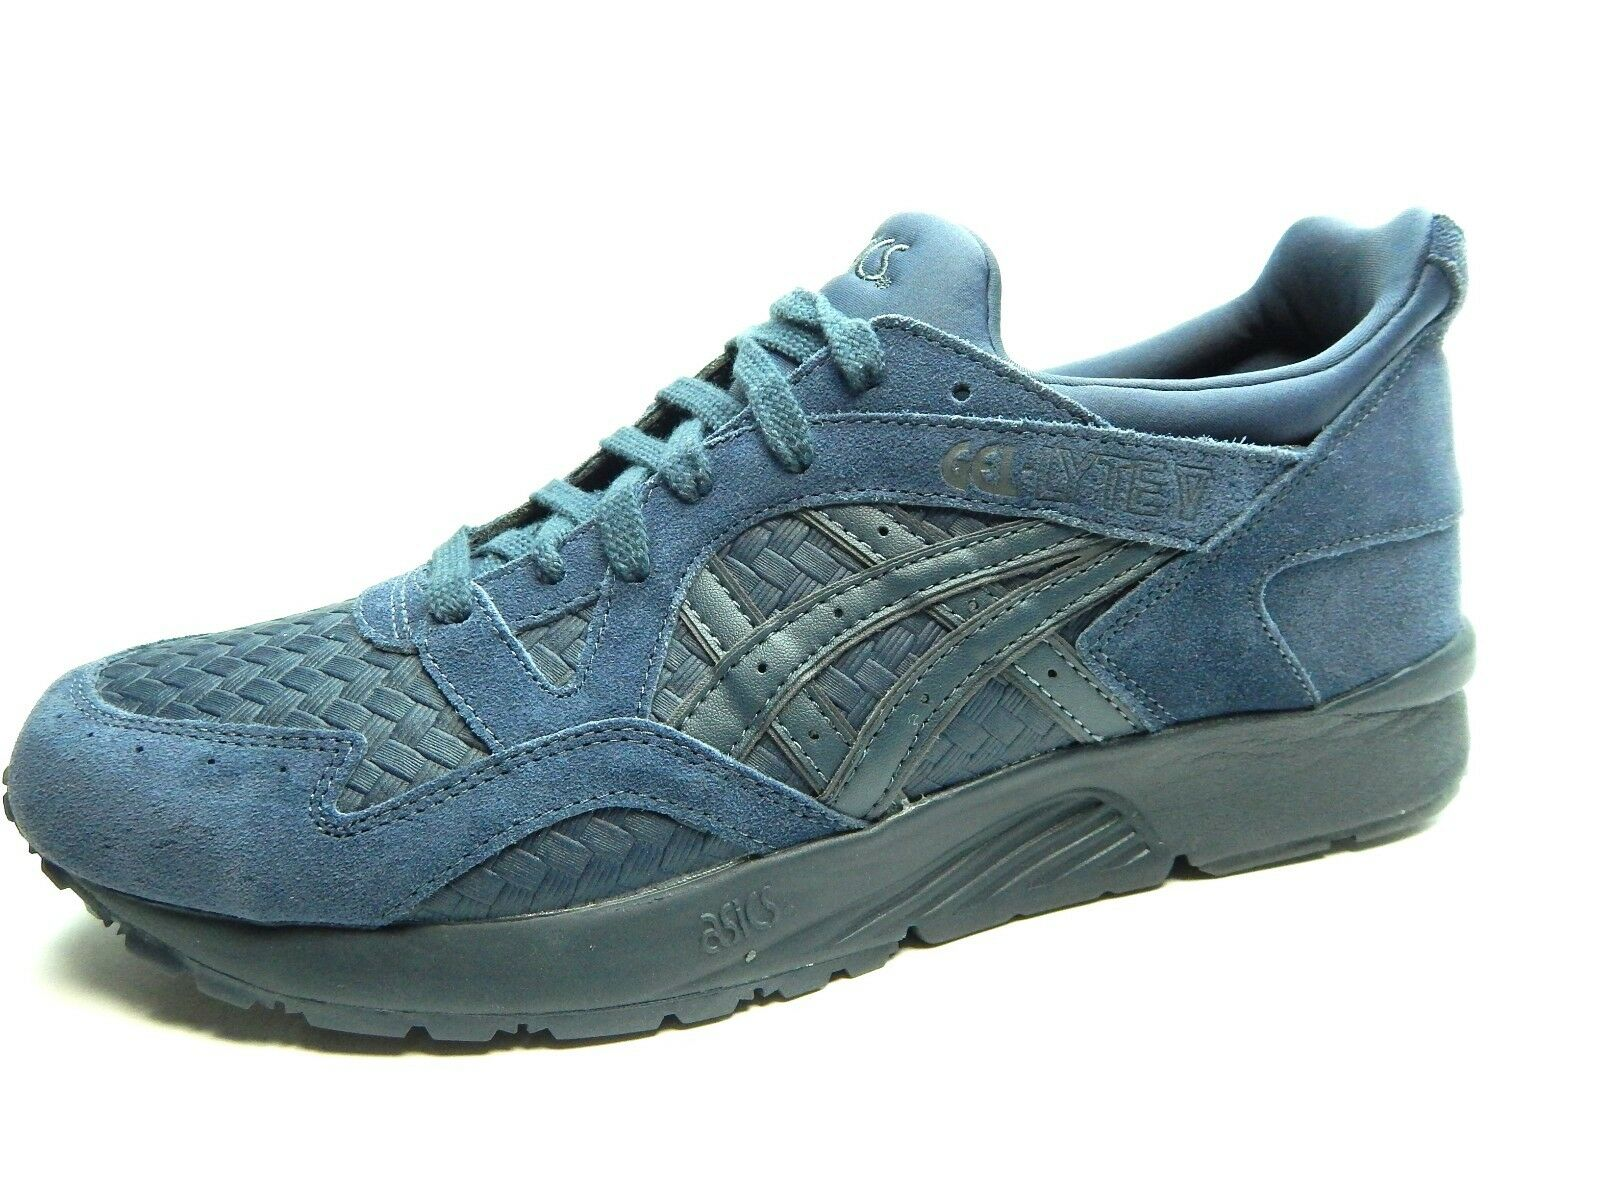 ASICS GEL LYTE V INDIA INK H70PH 5050 Homme Chaussures Taille 10 TO 13